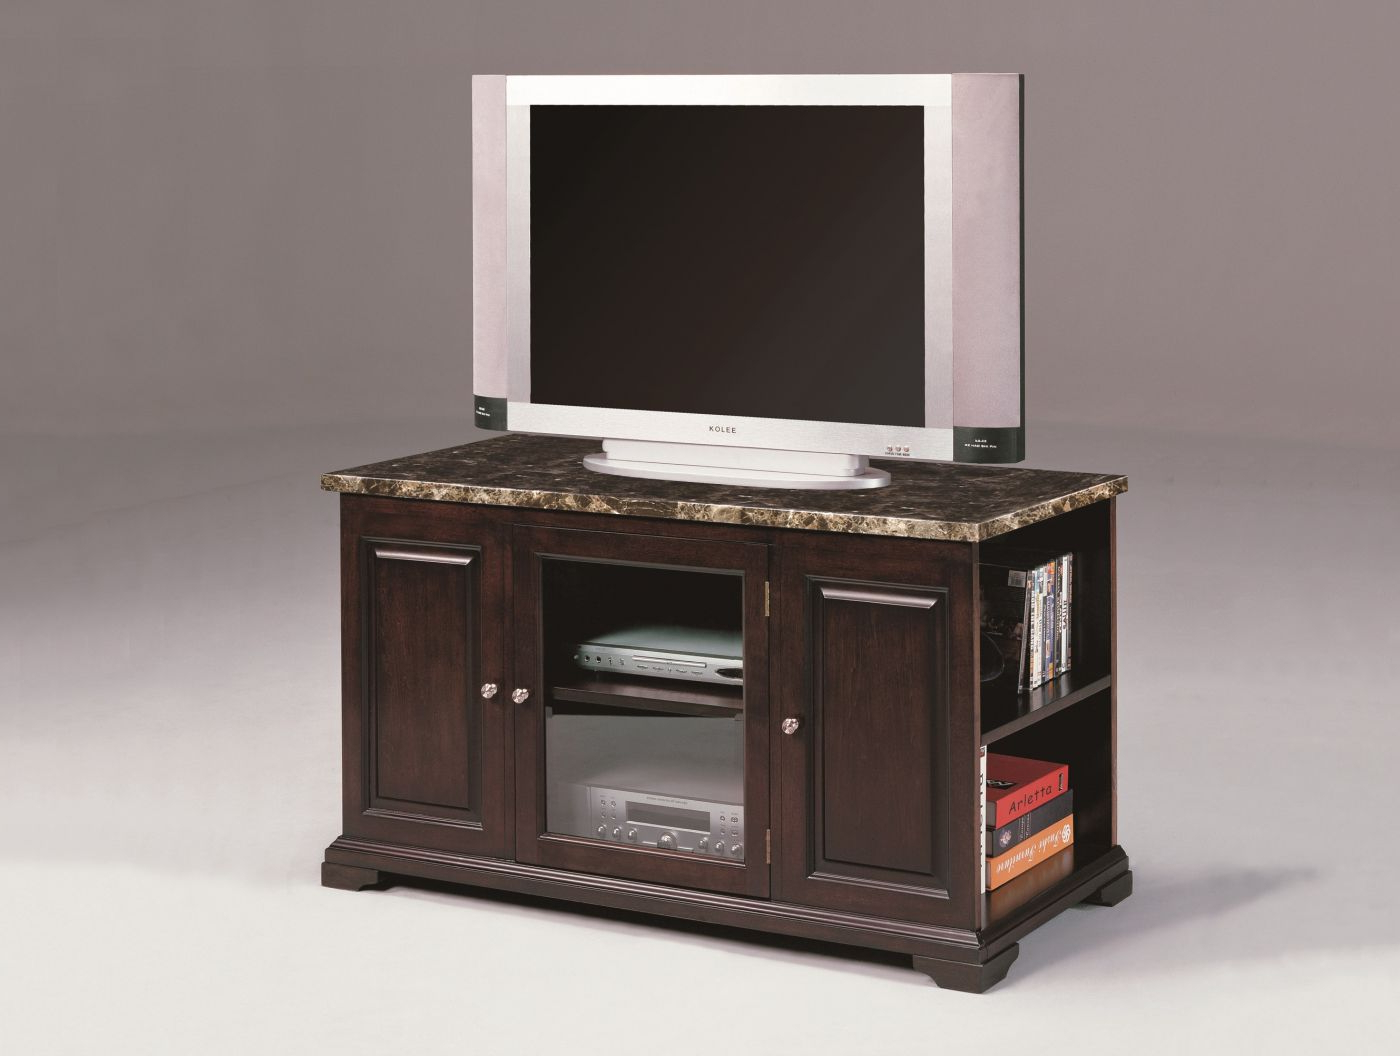 Harris Small Marble Espresso Console – Plasma Intended For Draper 62 Inch Tv Stands (View 6 of 20)